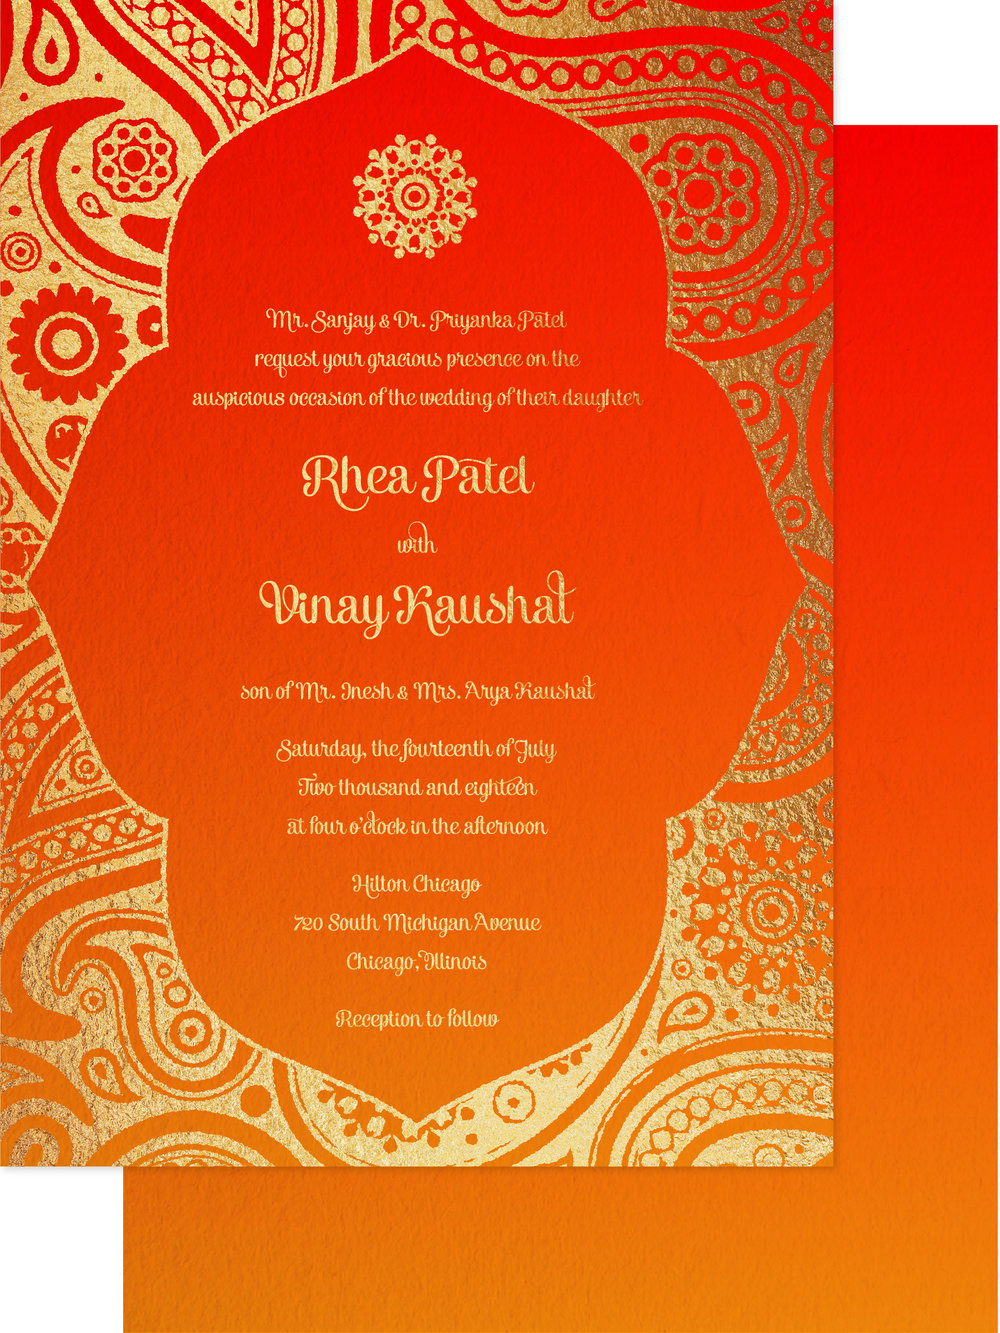 invitation front and back